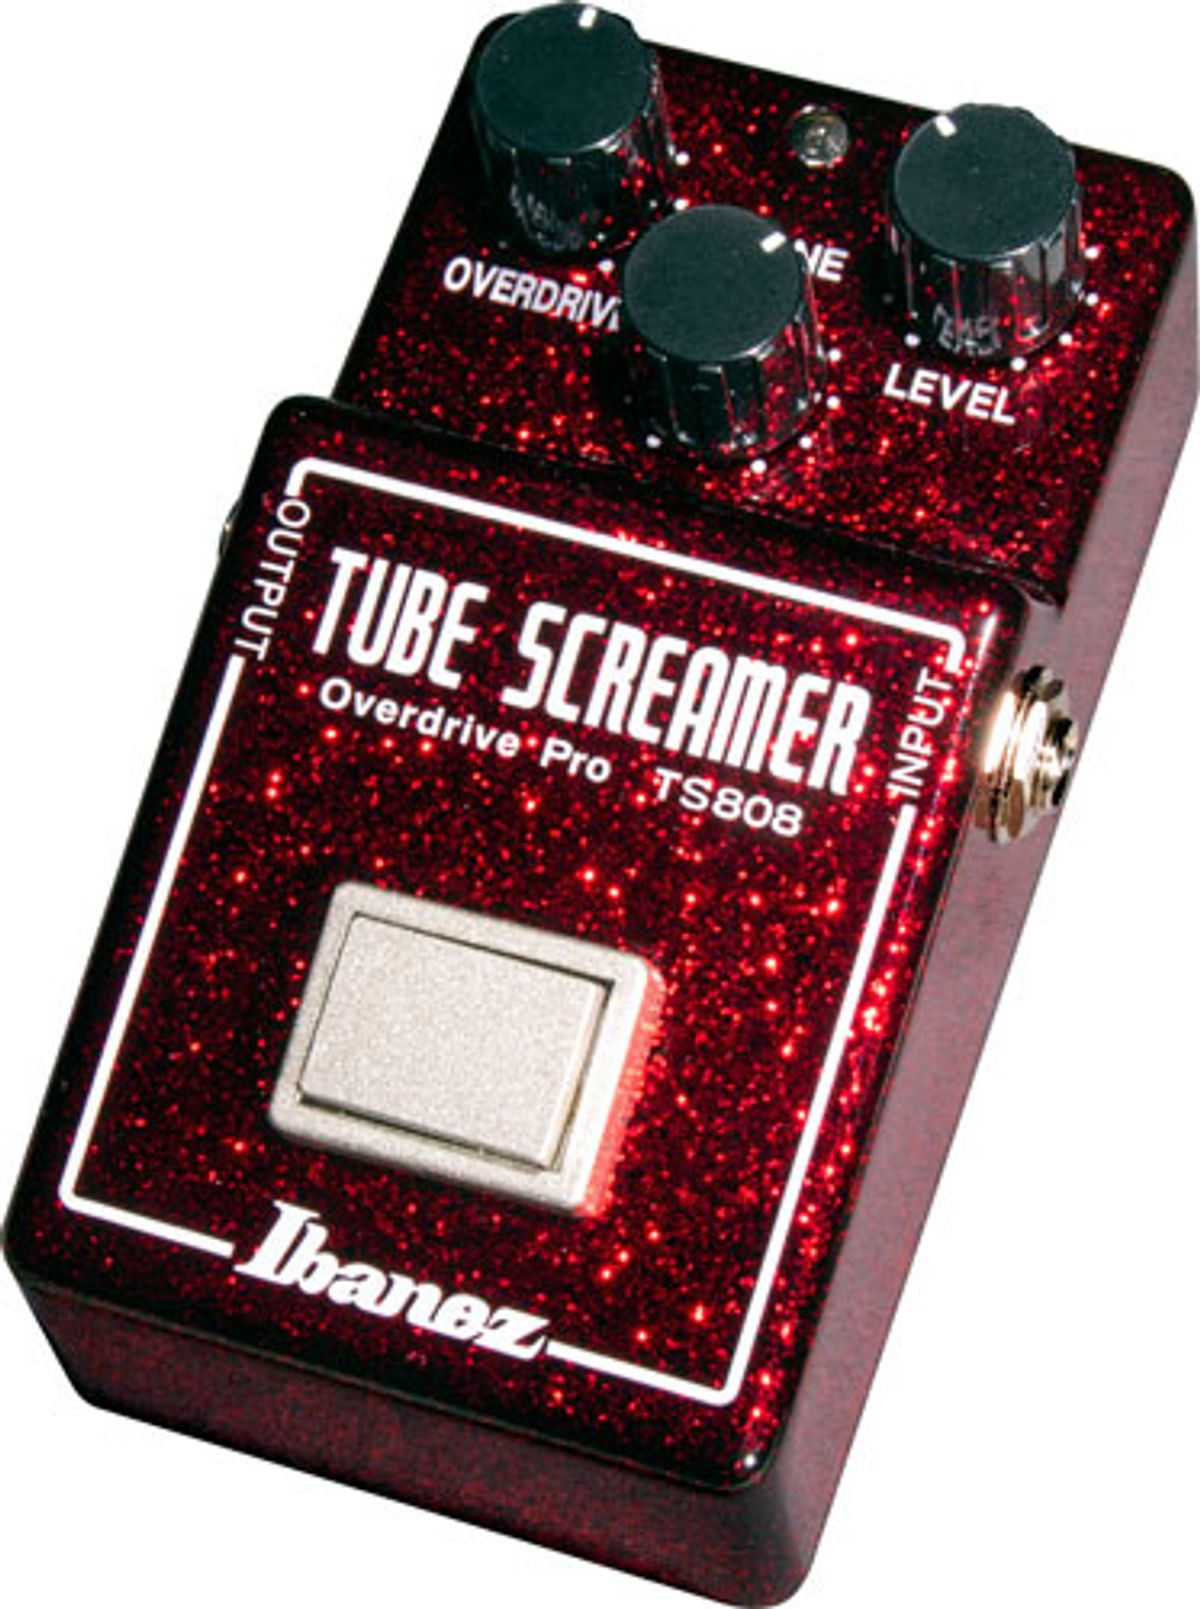 Ibanez Releases the 40th Anniversary Tube Screamer and Collaboration With Vemuram